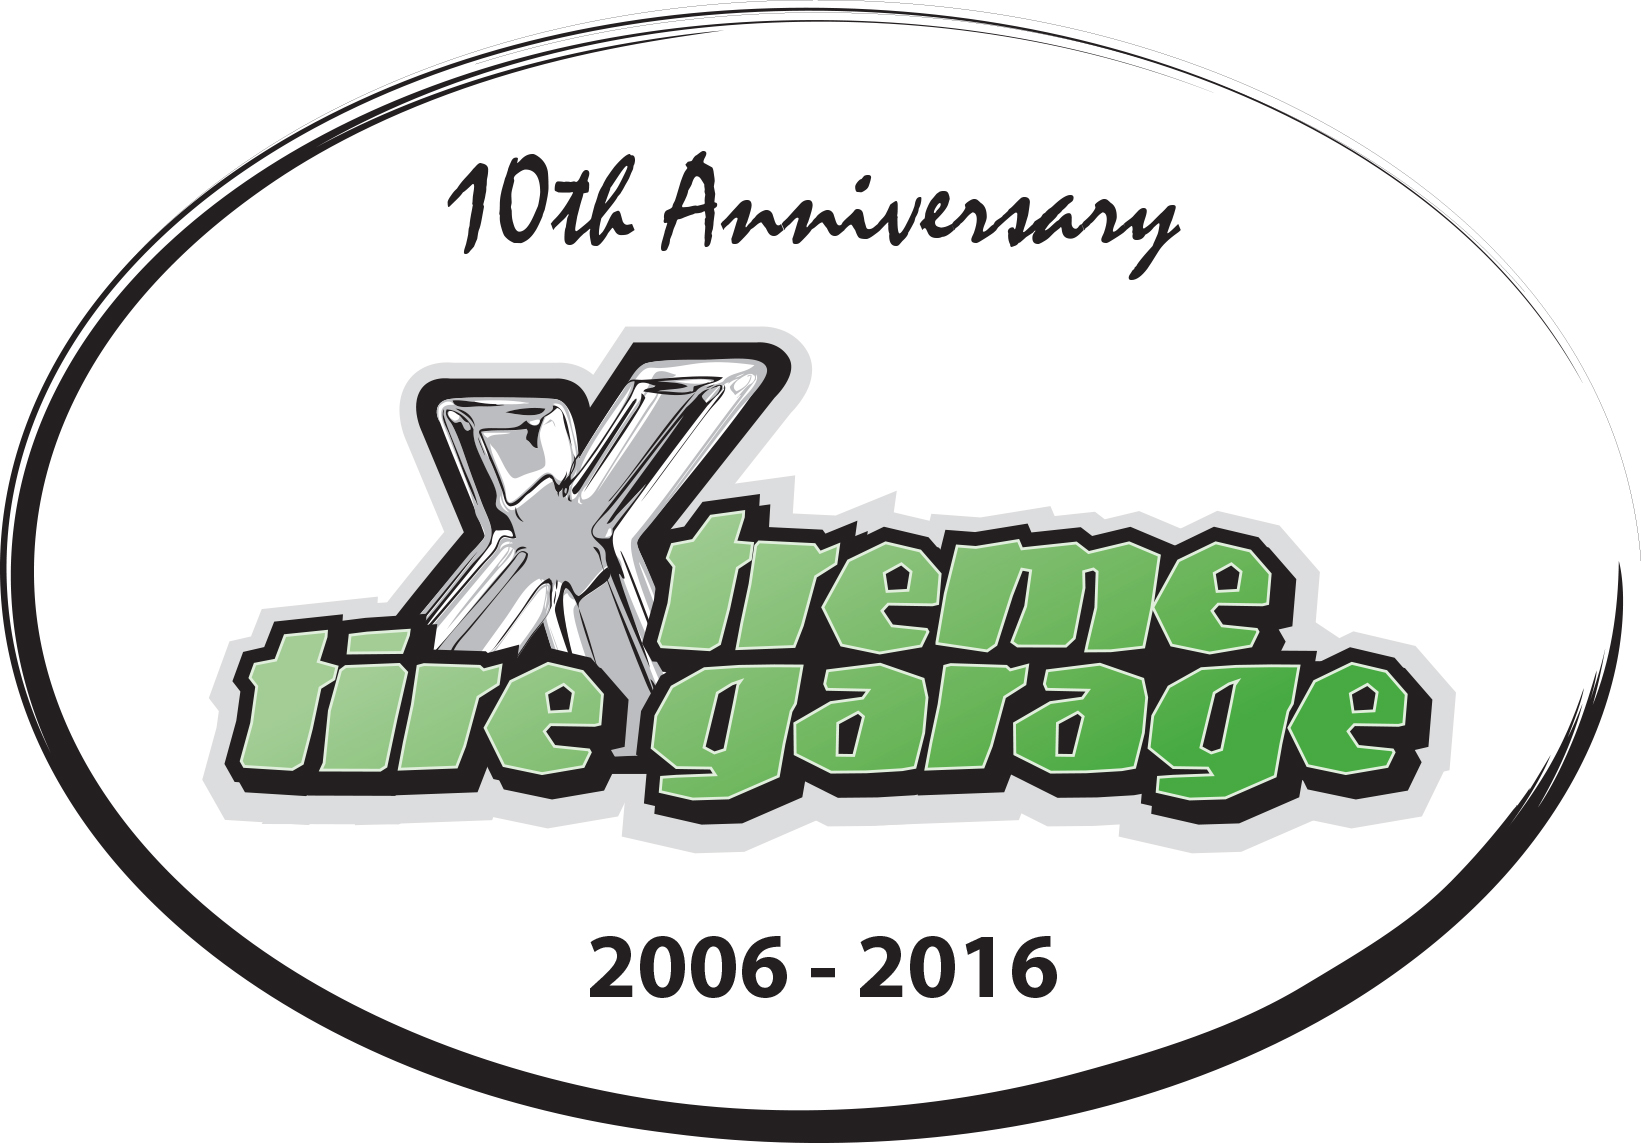 XTG Logo - 10th Anniversary - Branded.jpg